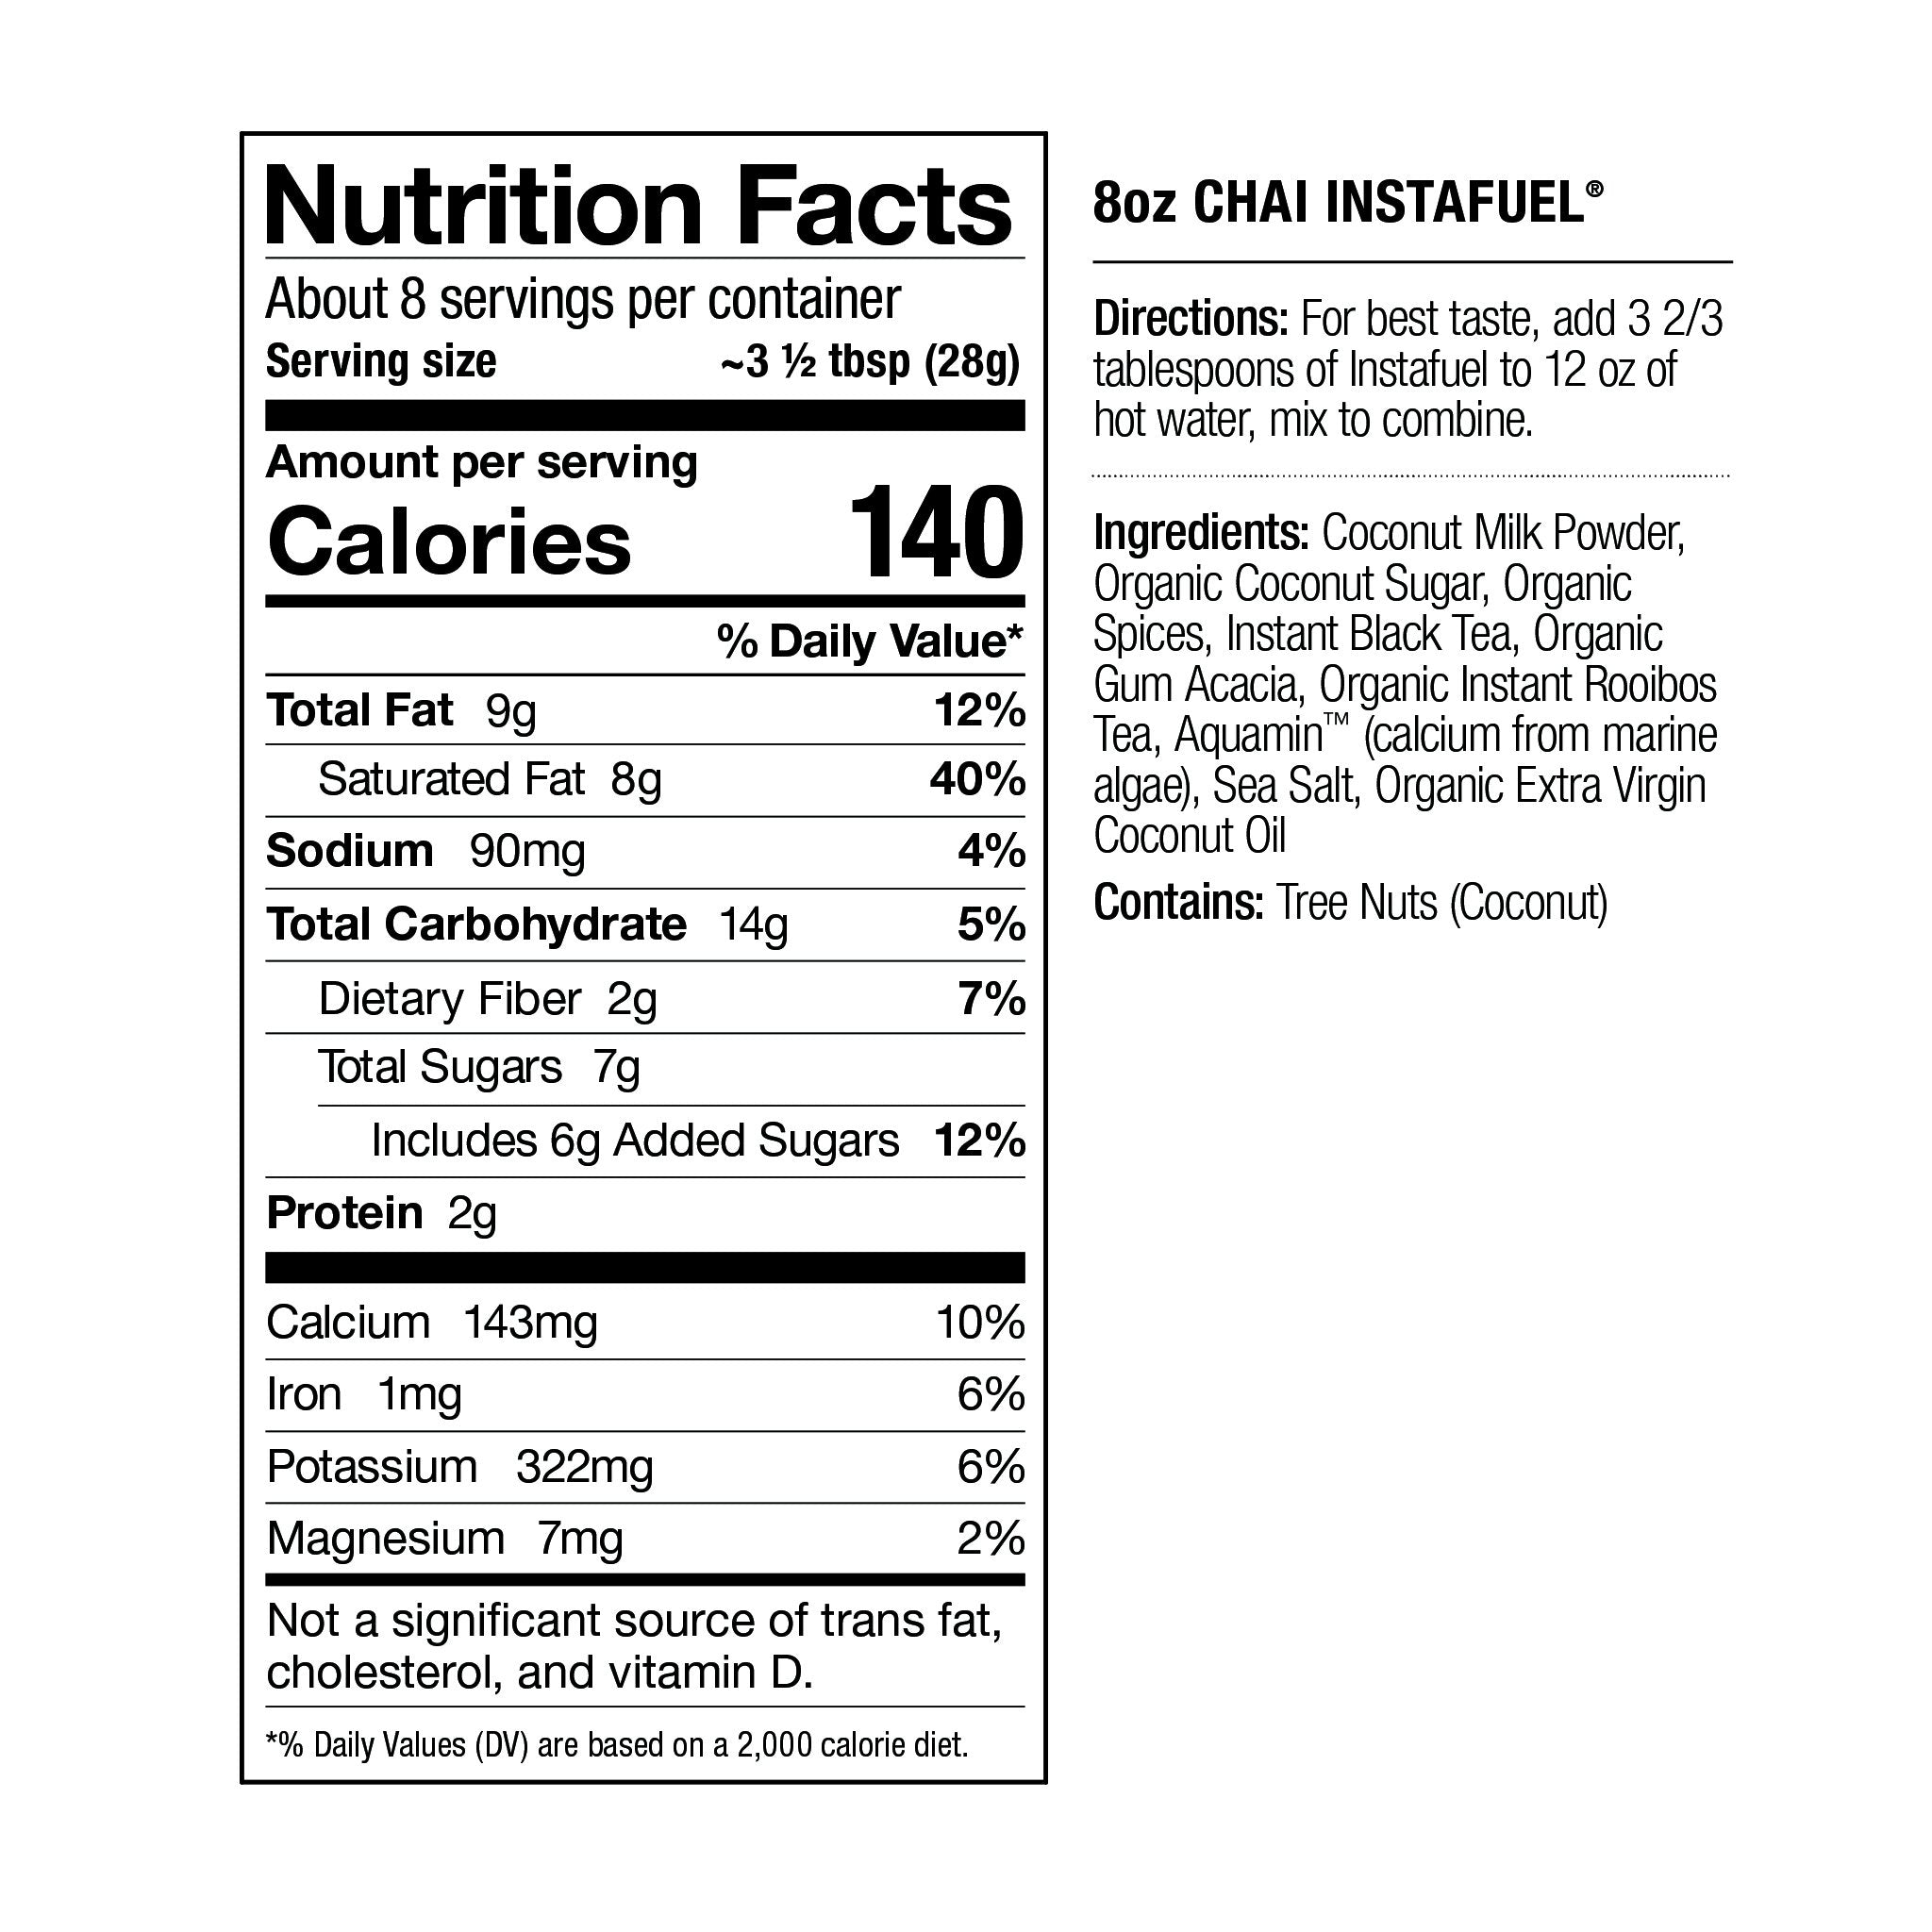 Nutrition facts for Chai Instafuel